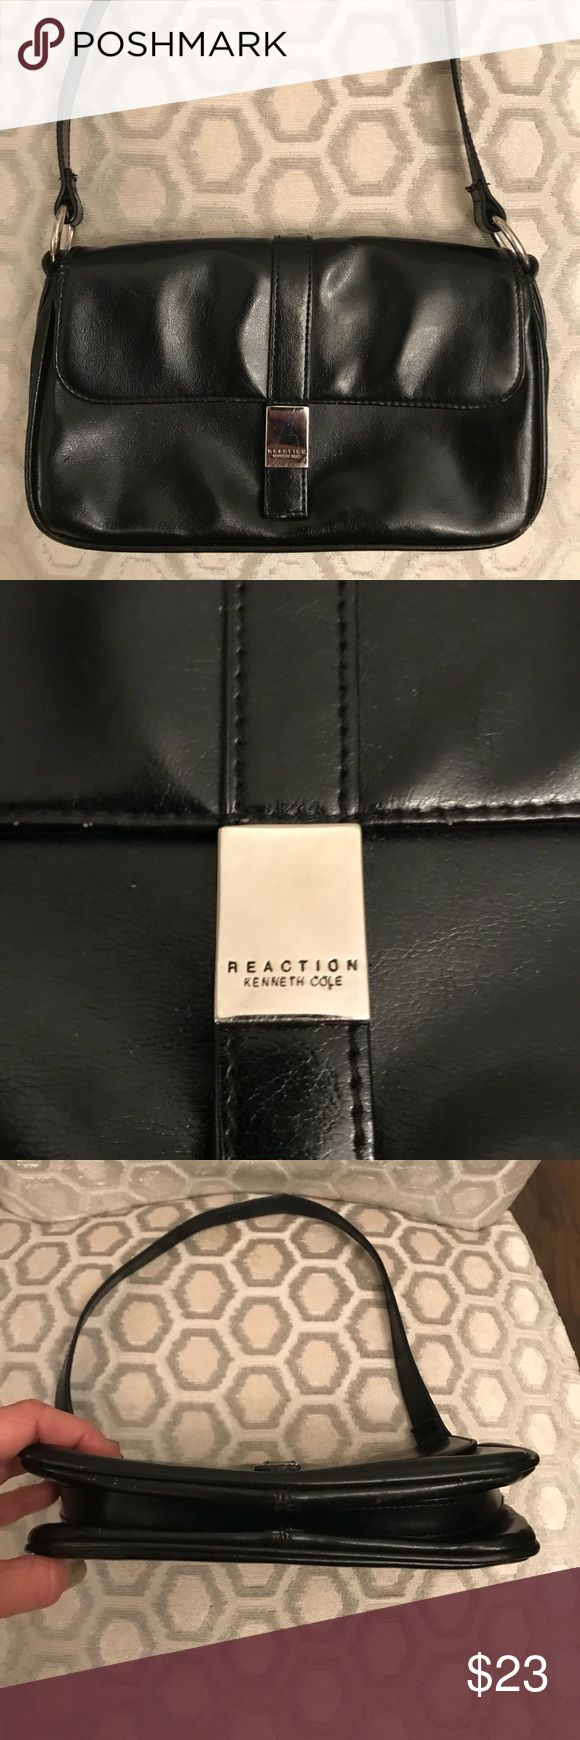 Kenneth Cole Reaction Mini Black Silver Tote Bag Man made.  Good condition.  Light wear on under strap and on hardware. Kenneth Cole Reaction Bags Totes